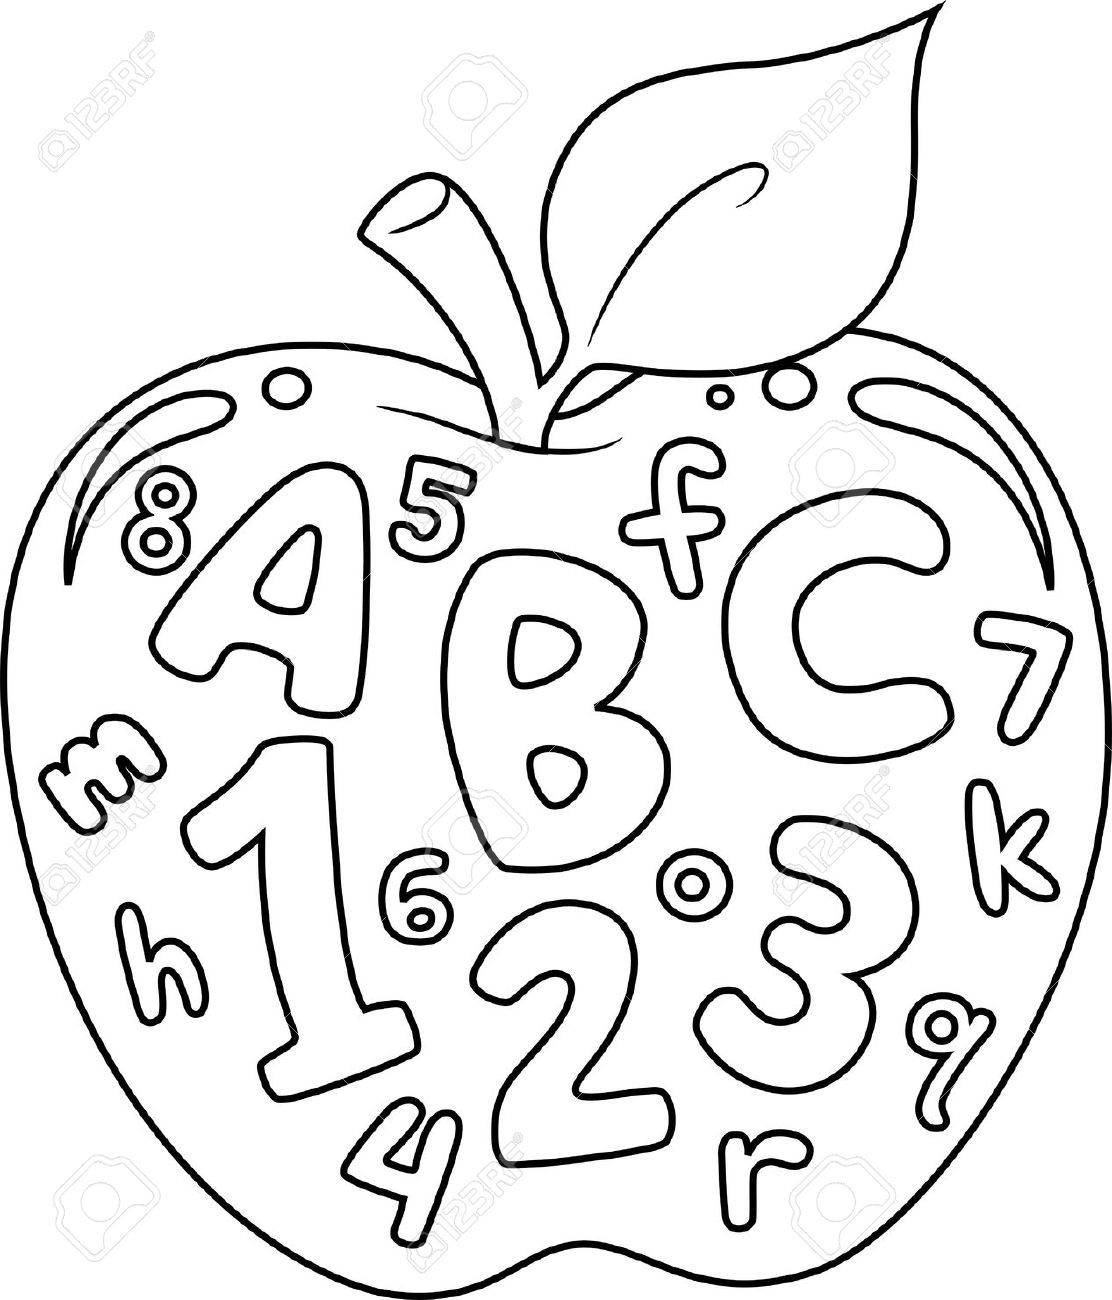 Coloring Book Illustration Featuring An Apple With Numbers And ...